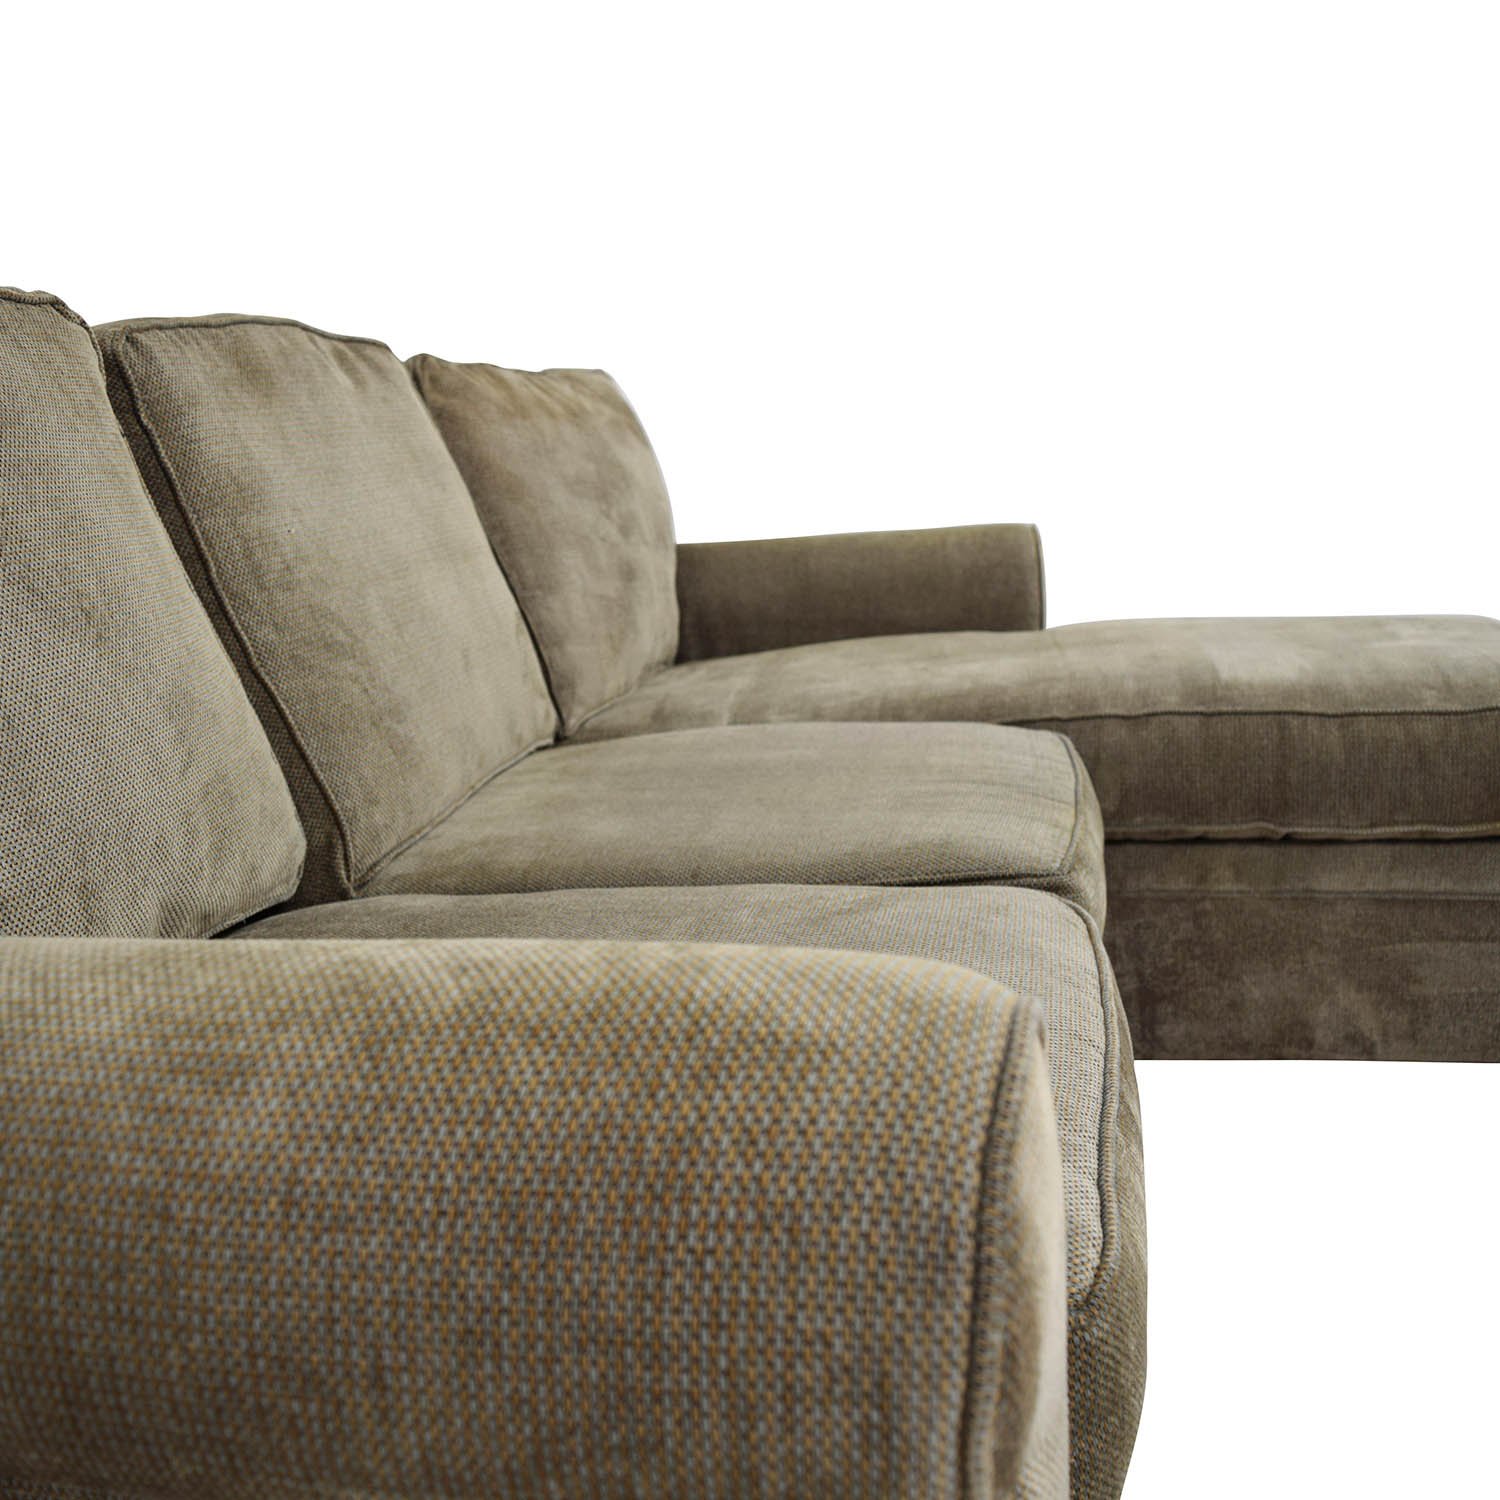 Rowe Furniture Rowe Furniture Green Sectional with Curved Arms discount